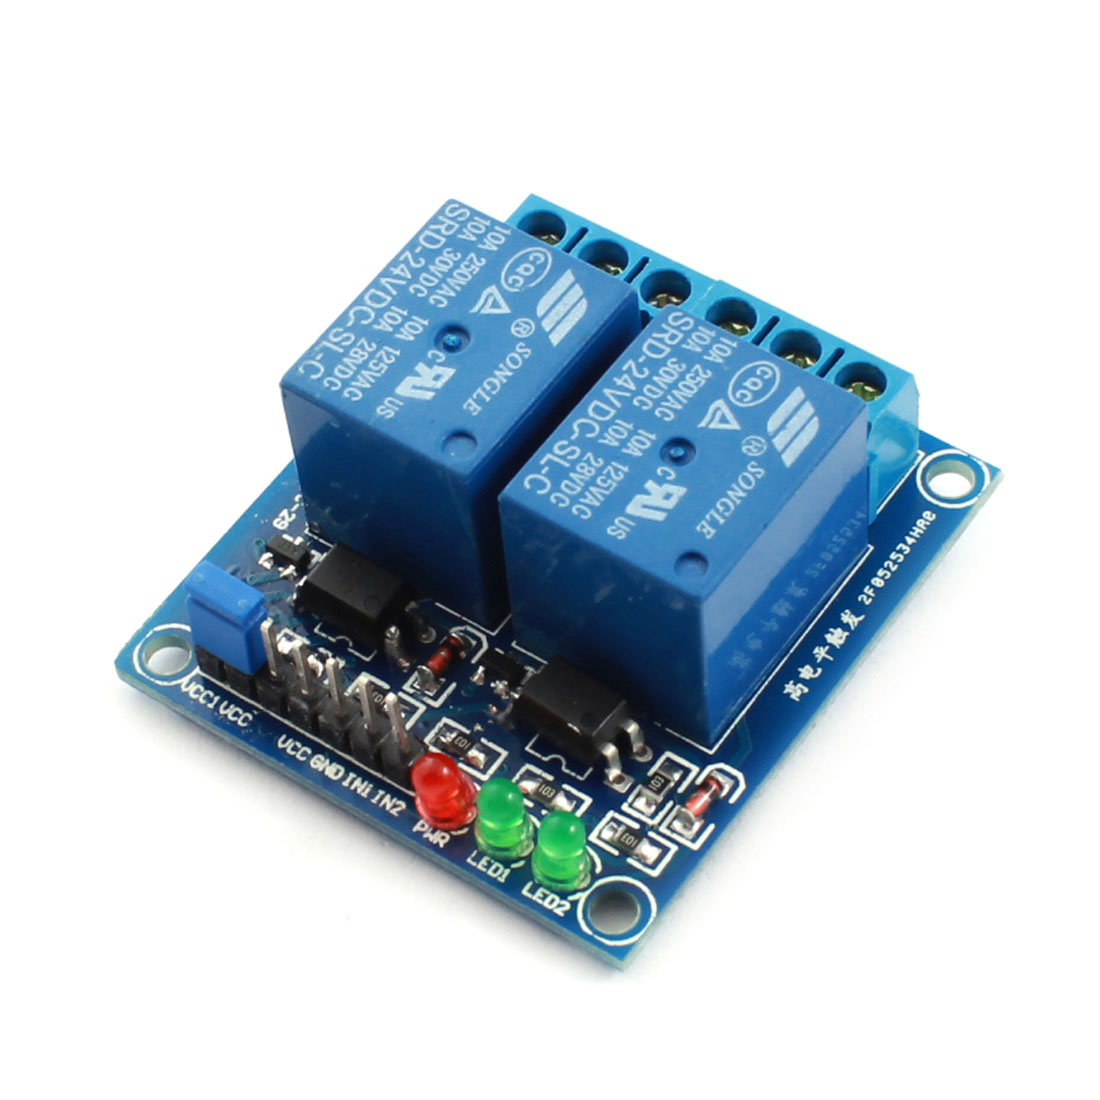 DC 24V 2 Channels Photoswitch High Level Trigger Optical Isolation Control PCB Circuit Relay Module Blue